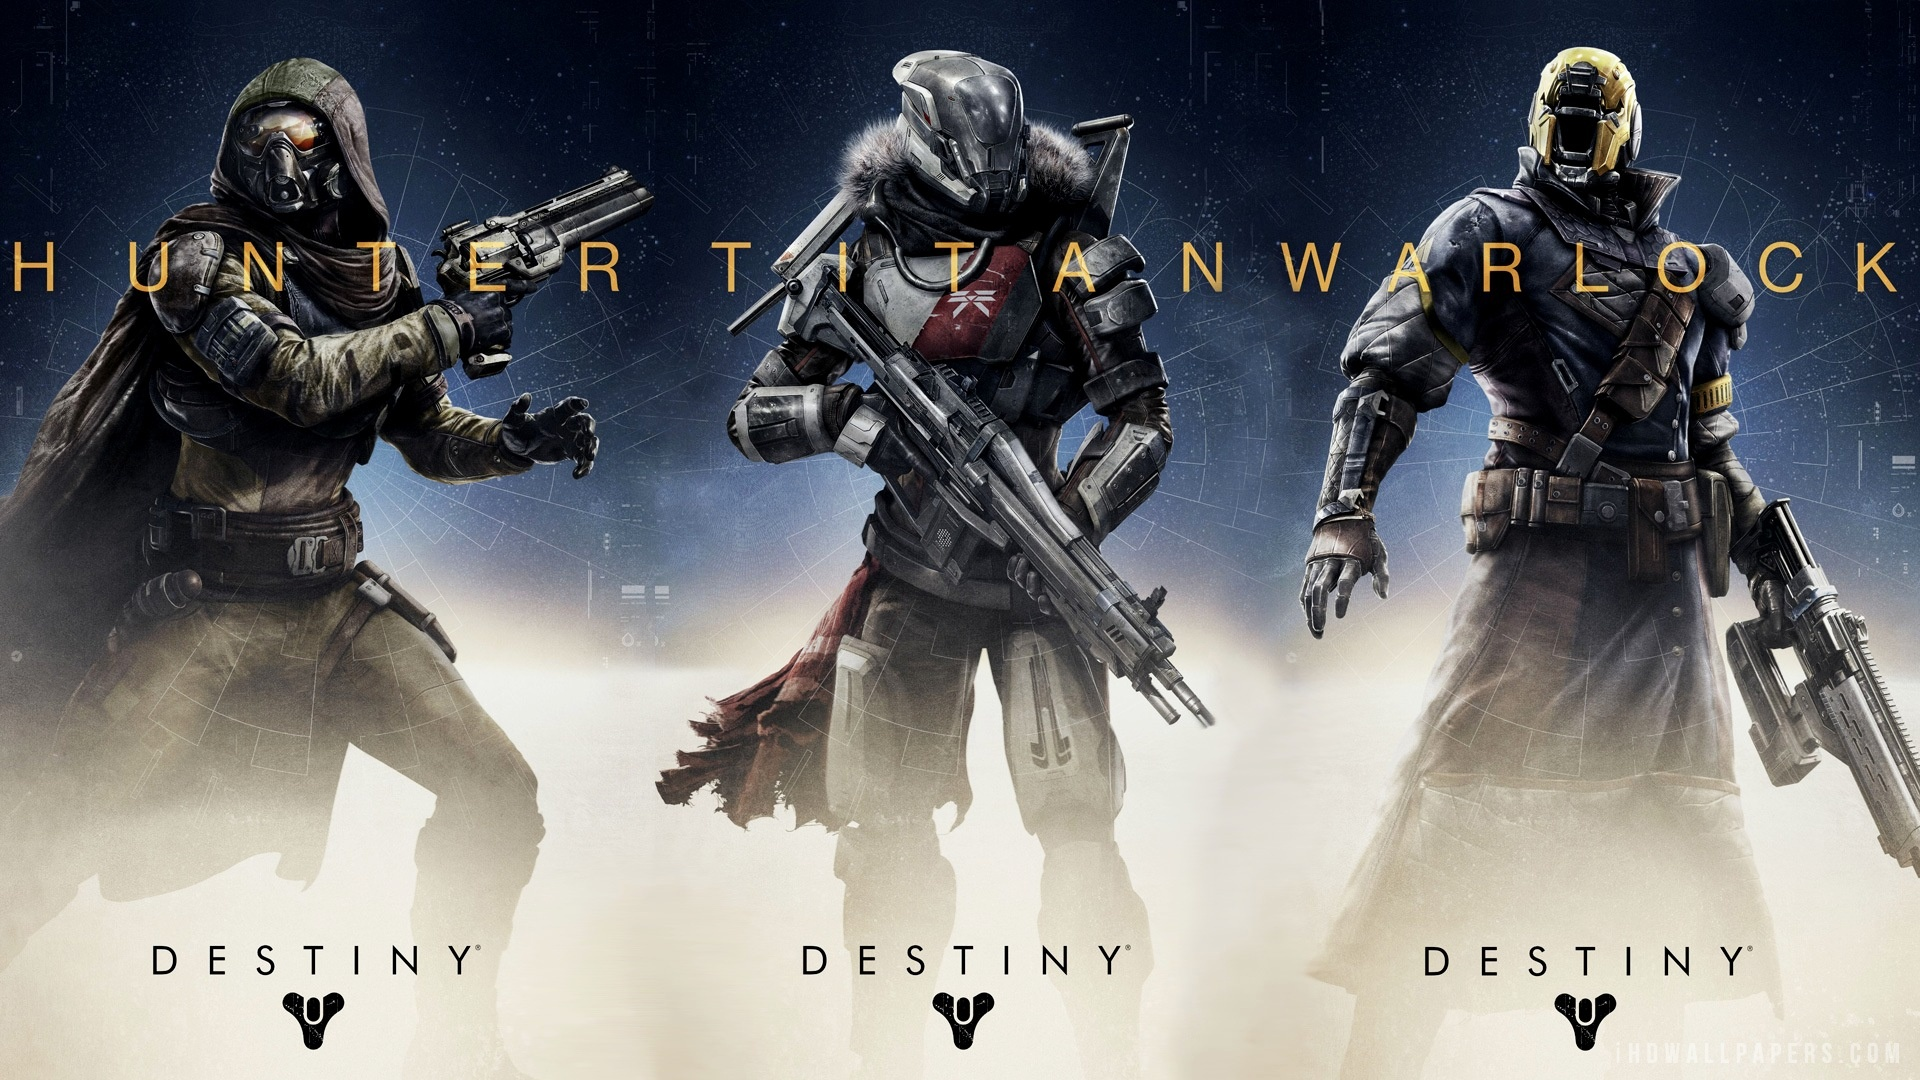 Destiny-iPhone-HD-wallpaper-wpc9004226